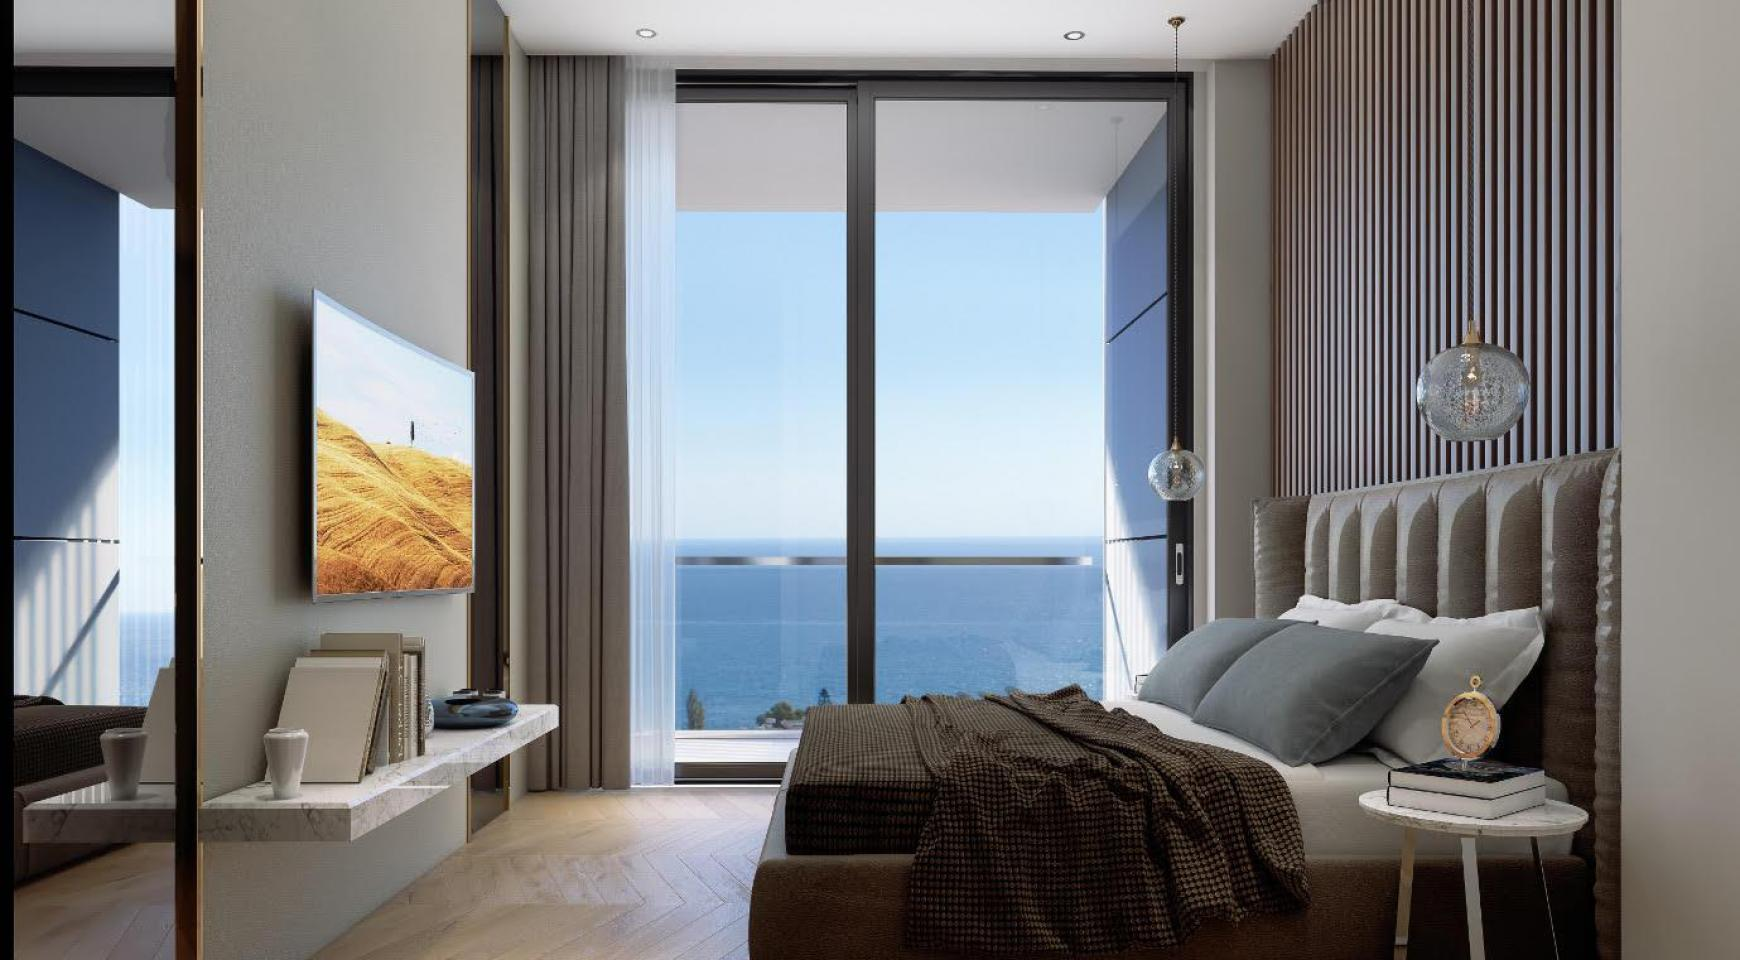 3 Bedroom Apartment with Sea Views in a Luxury Complex - 9